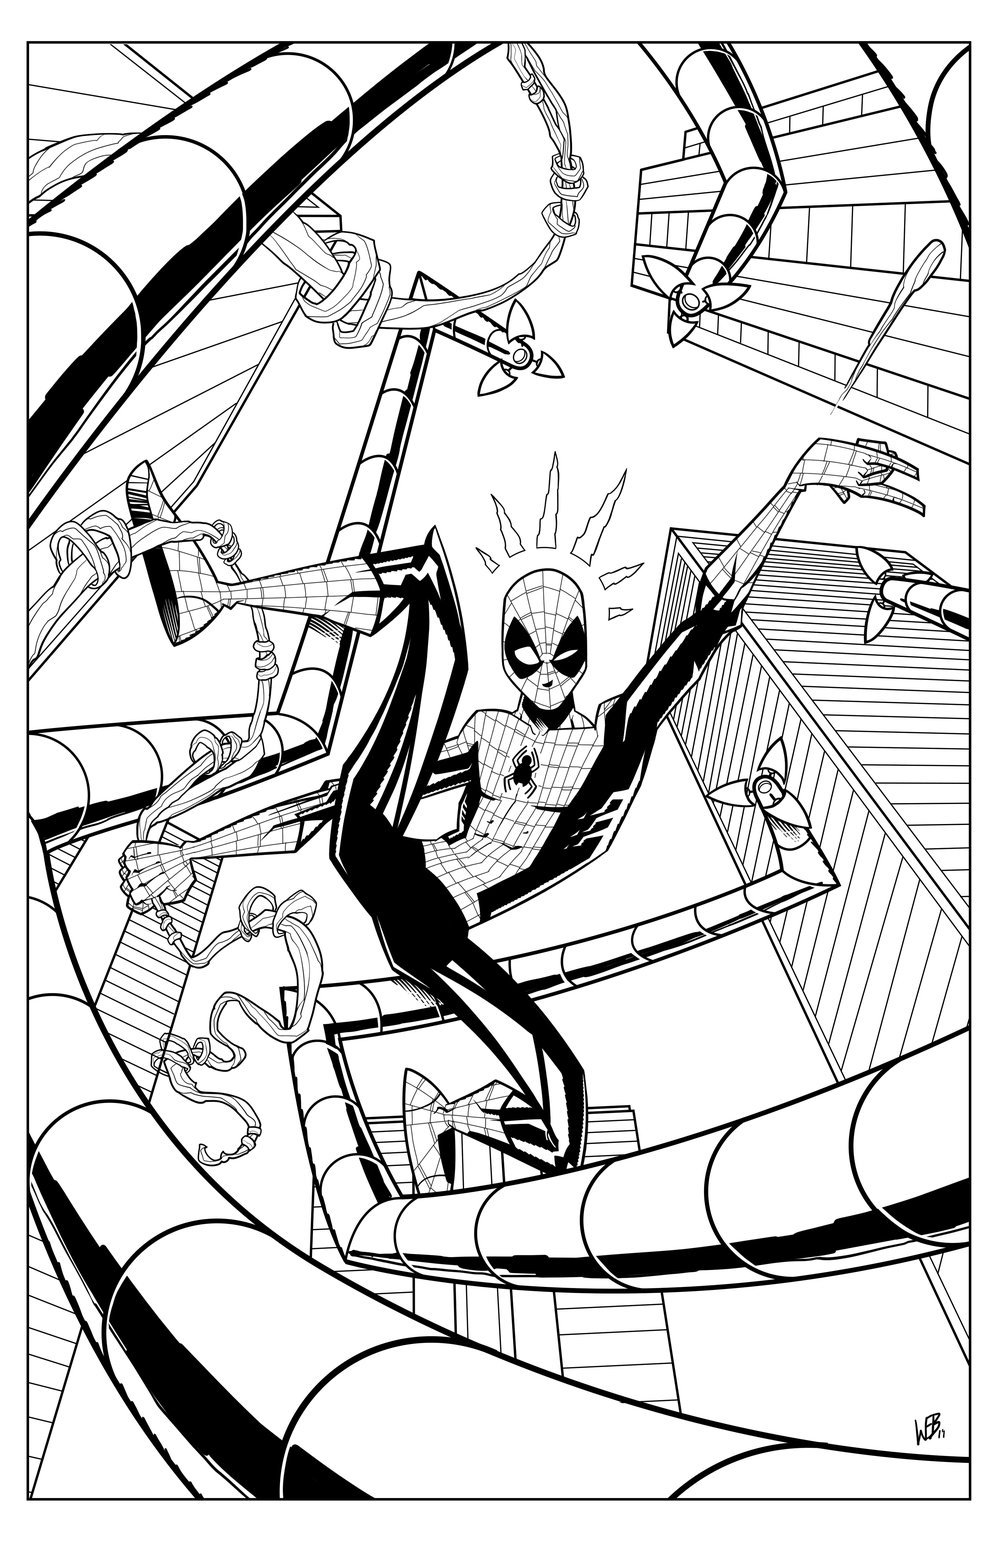 I love drawing Spider-Man. I think this is one of my favorites.